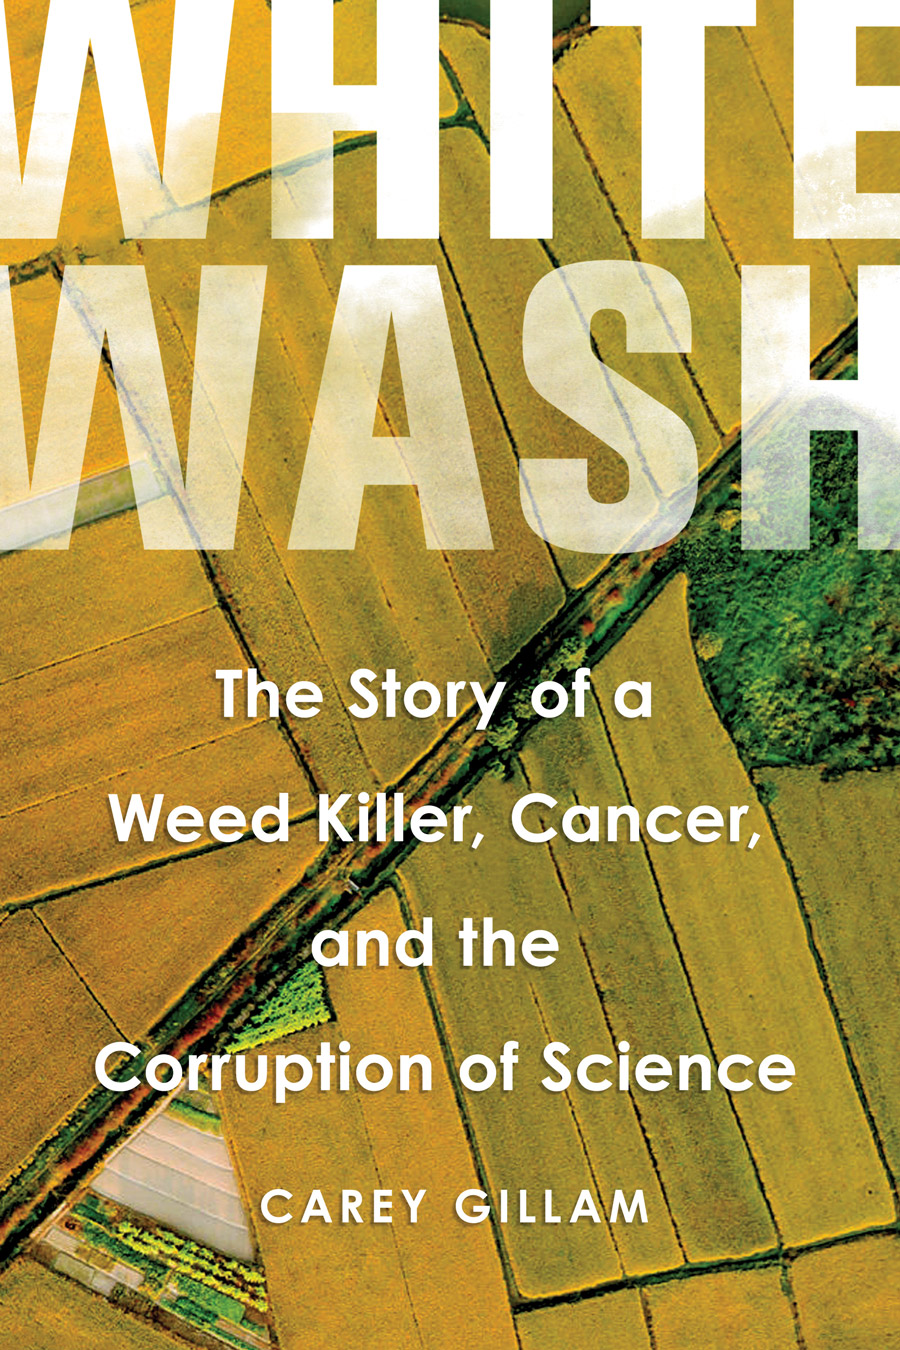 """""""Whitewash: The Story of a Weed Killer, Cancer, and the Corruption of Science"""" is available on Amazon and Barnes & Noble."""